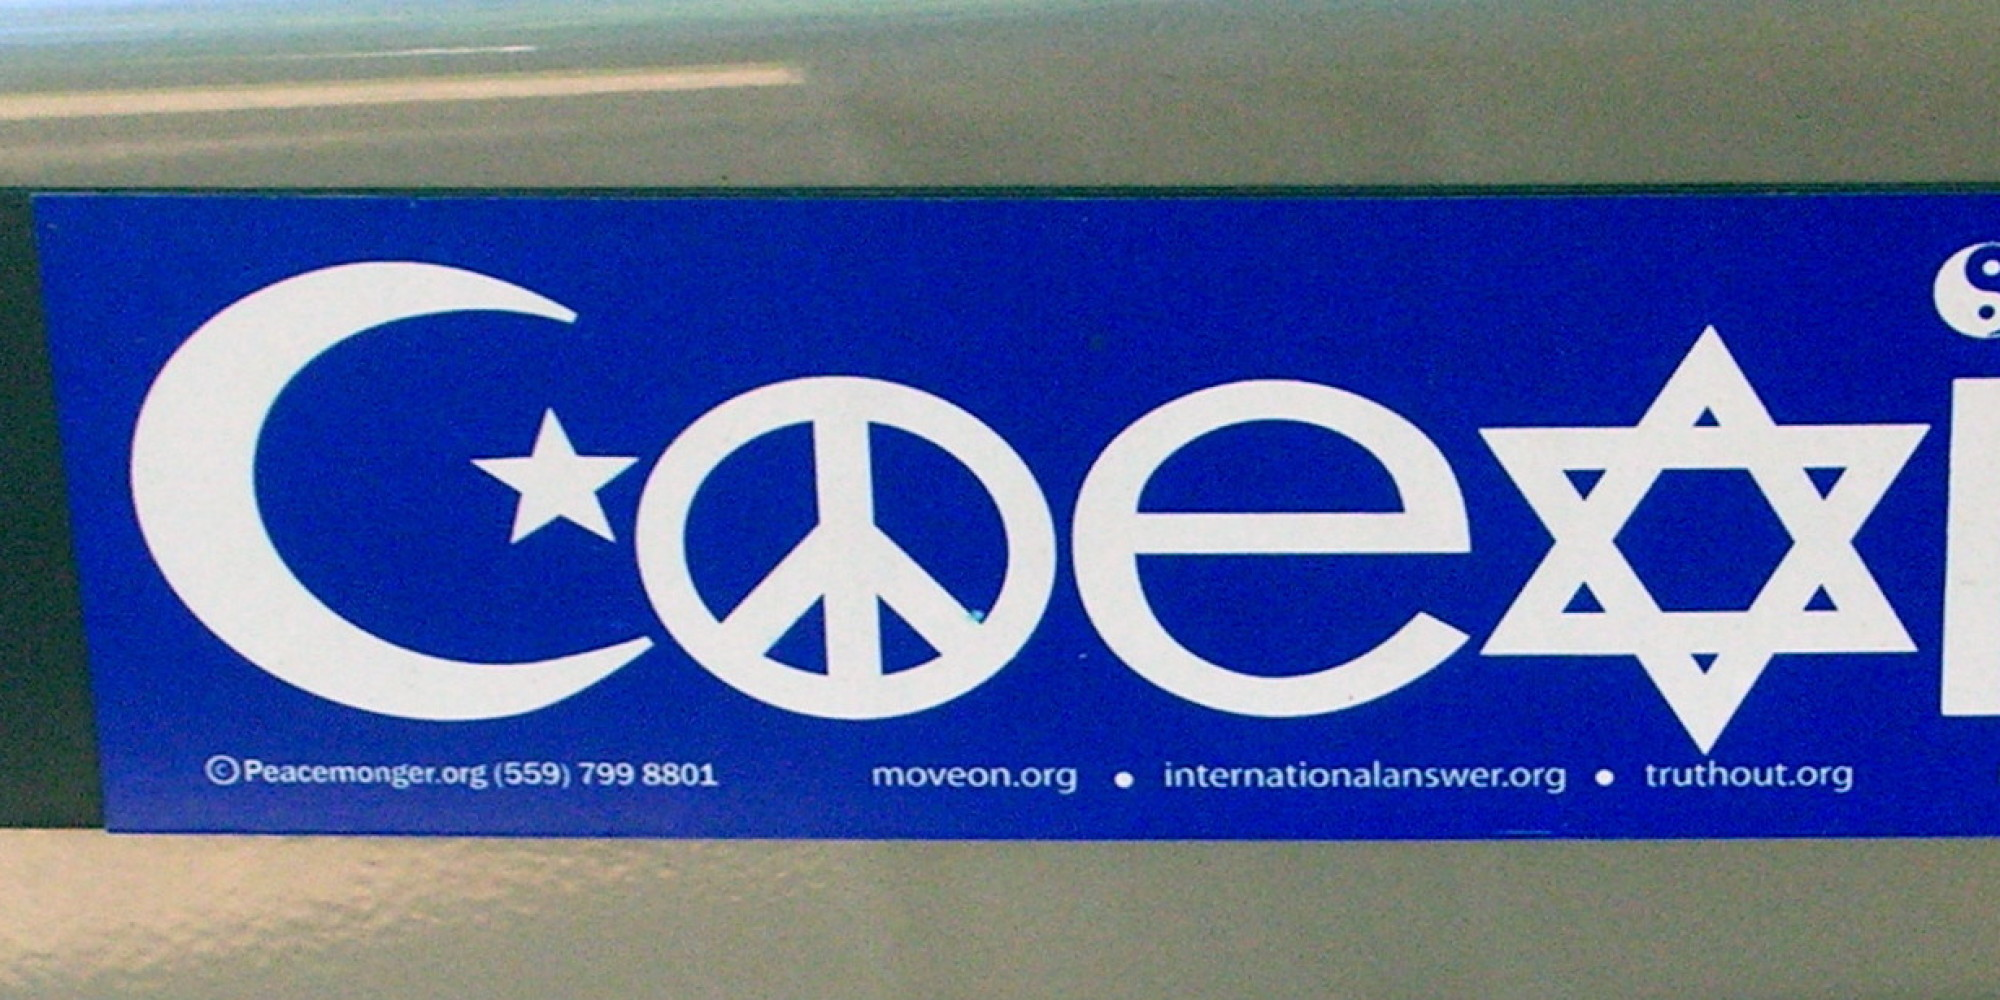 why the coexist bumper stickers bug me huffpost. Black Bedroom Furniture Sets. Home Design Ideas